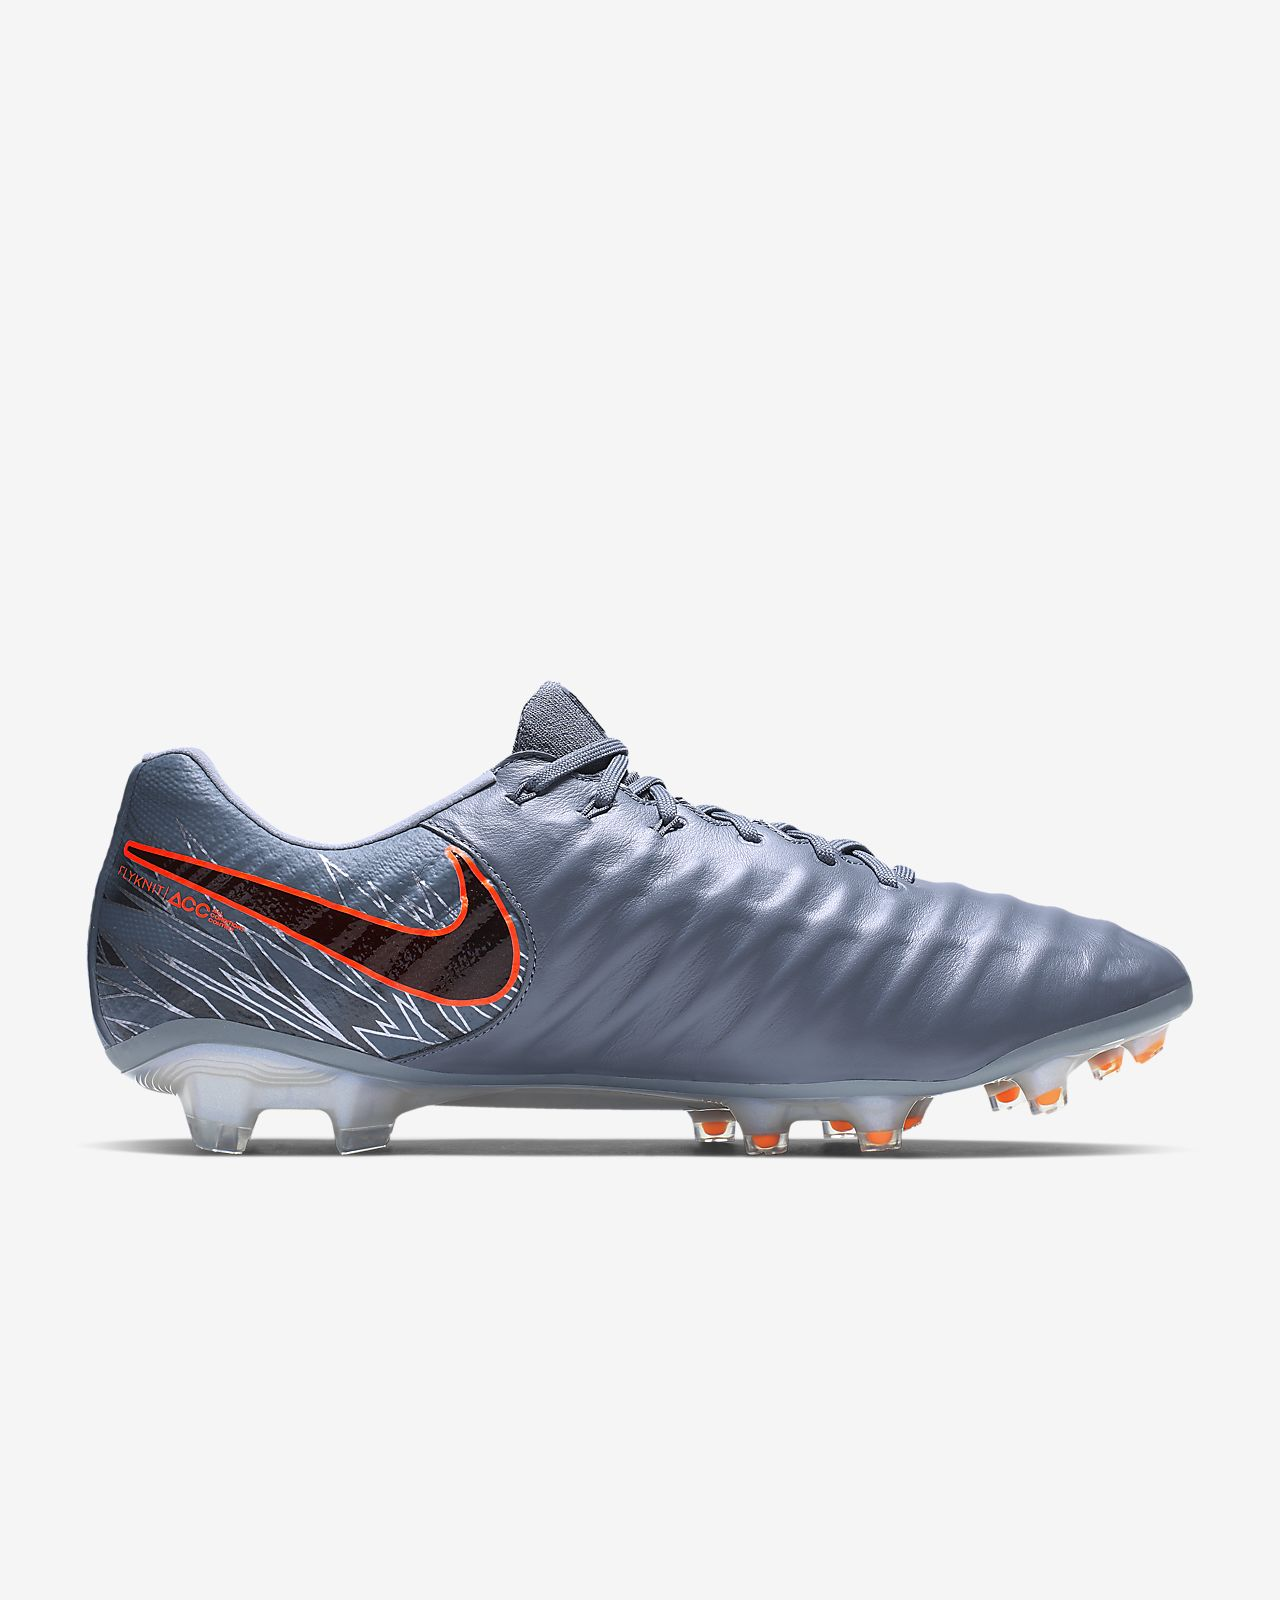 competitive price 02dc6 a31ad ... Nike Tiempo Legend 7 Elite FG Firm-Ground Football Boot